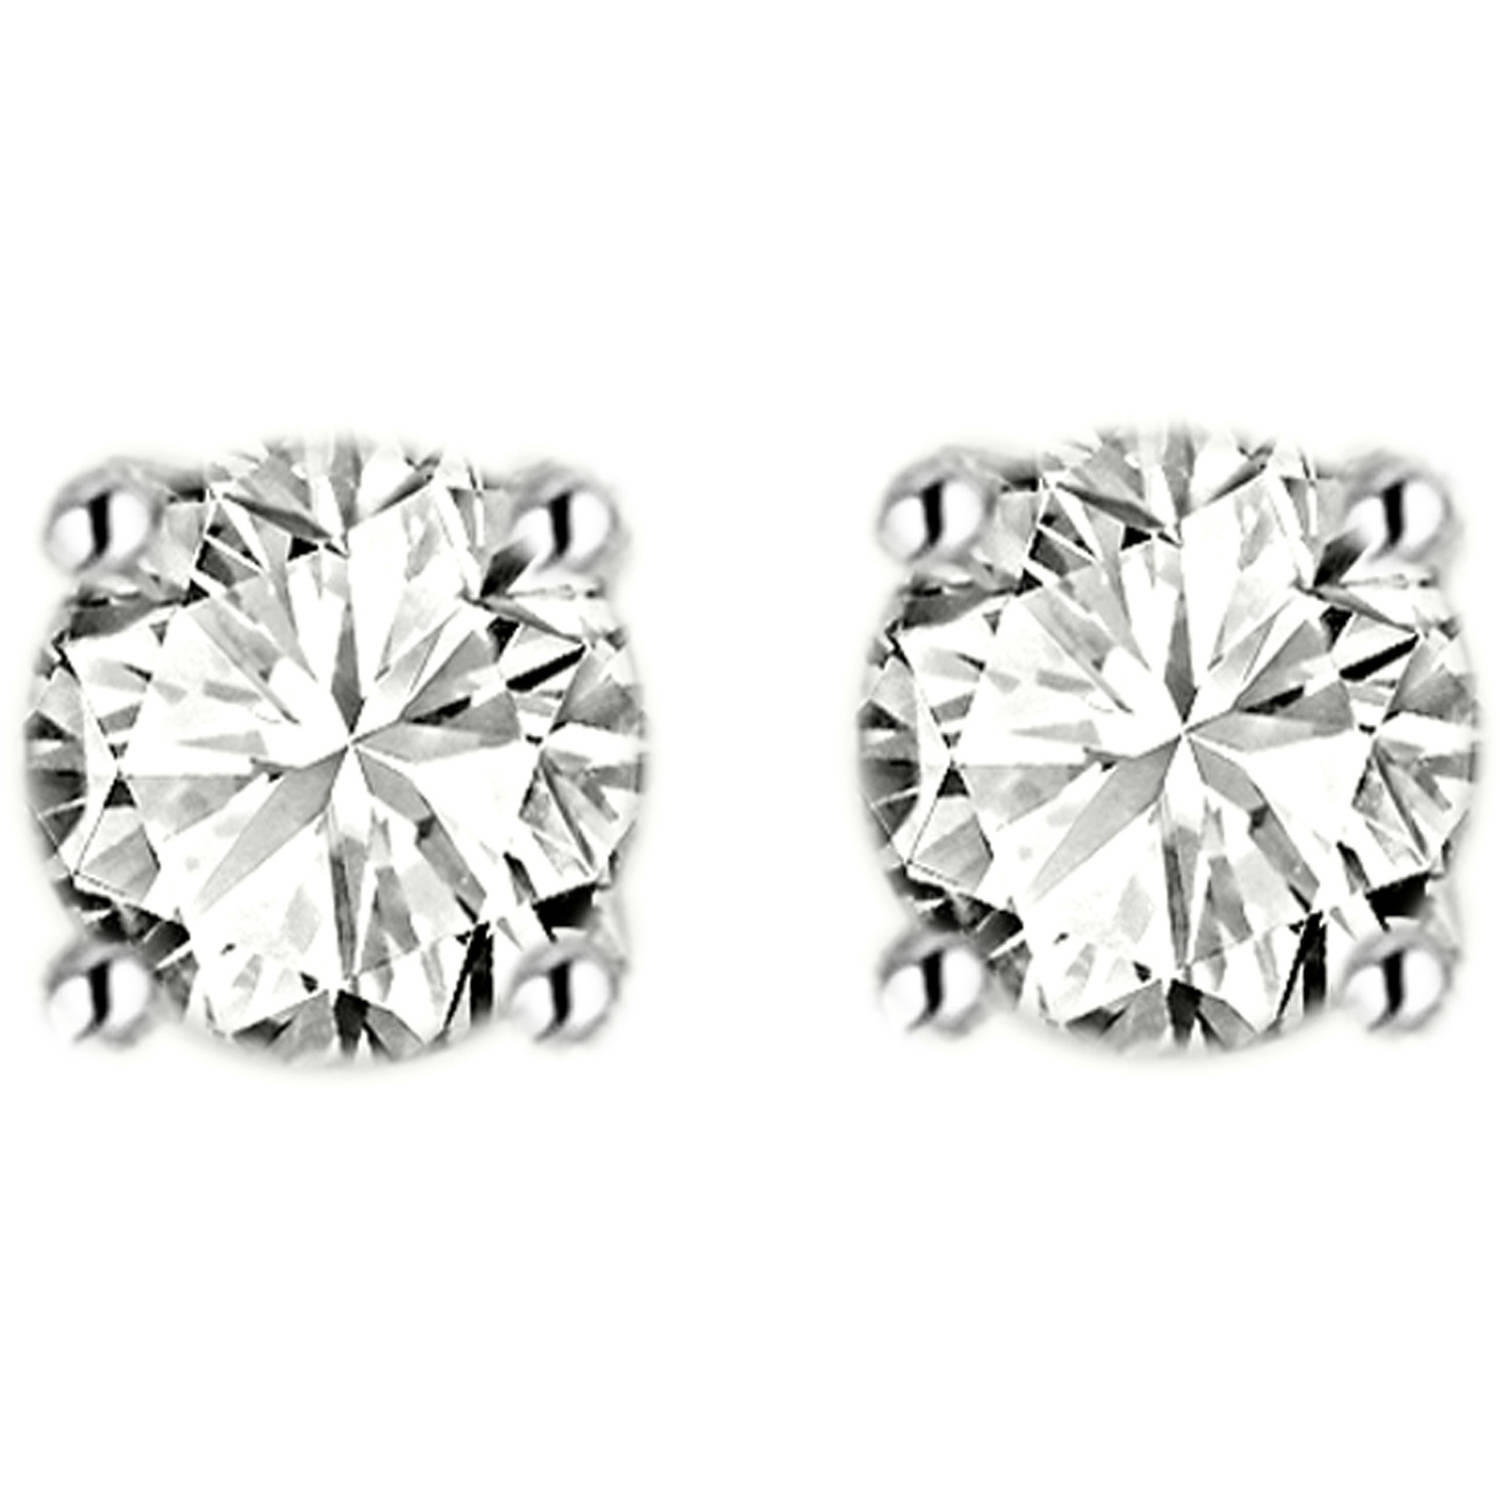 1/3 Carat T.W. Diamond 14kt White Gold Stud Earrings